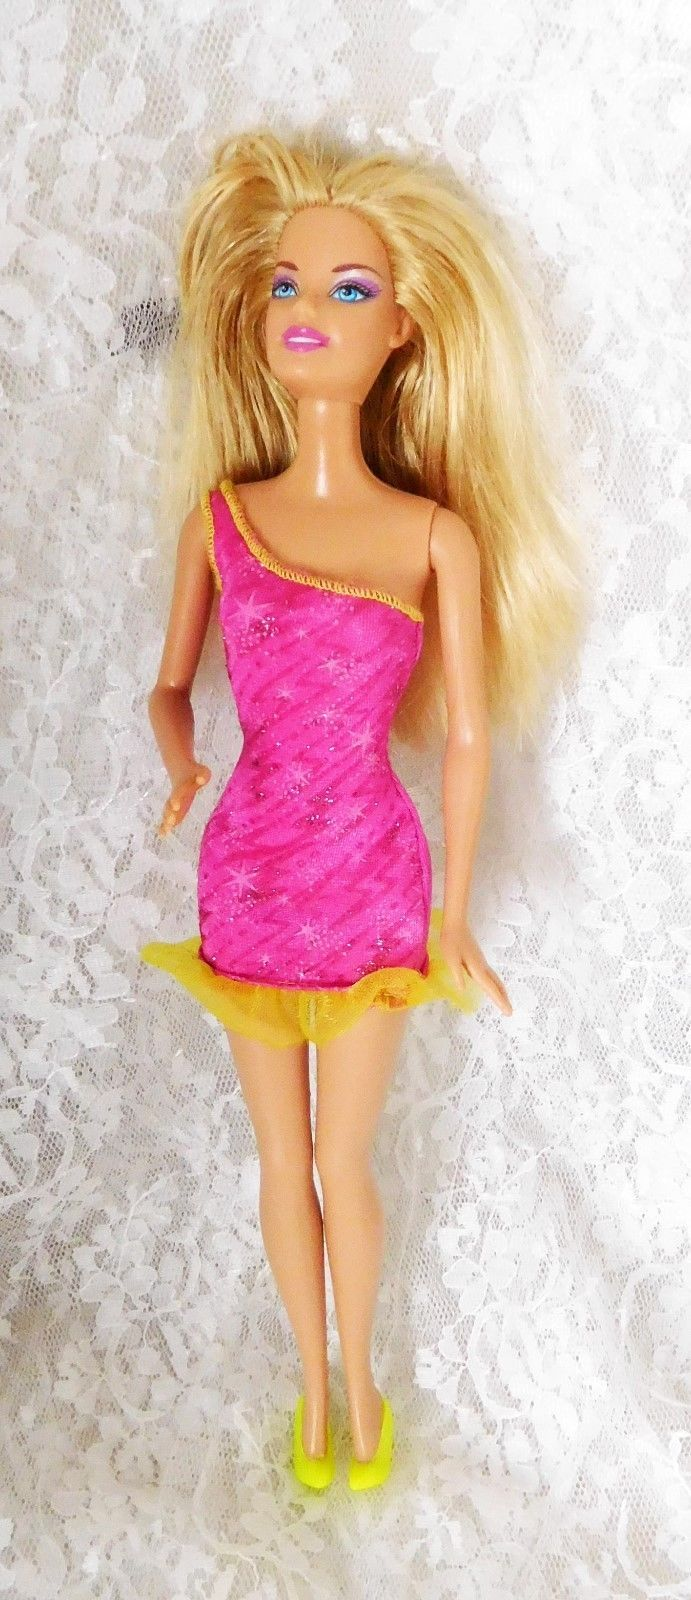 "1999 Mattel Barbie 11 1/2"" Doll #3252HF1 Bendable Knees - Blond Layered Hair - $9.49"